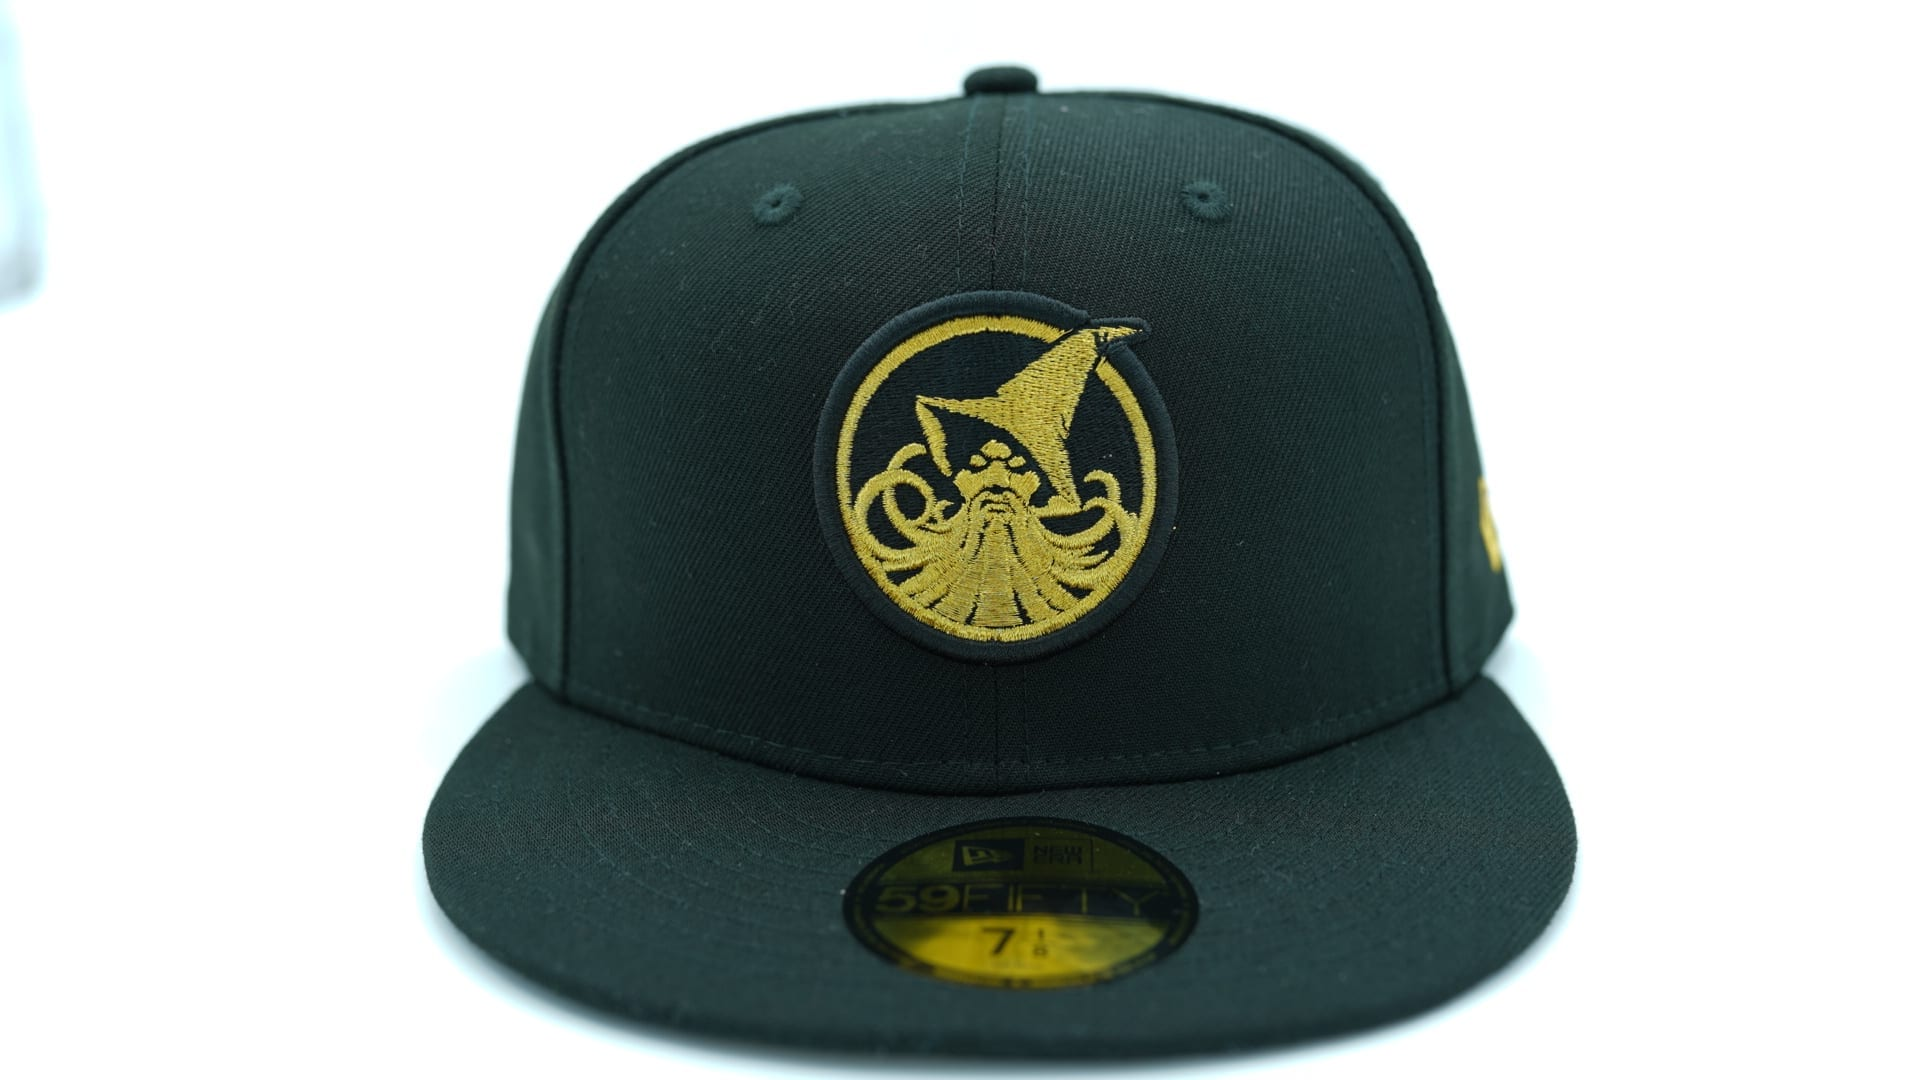 tokidoki new era 59Fifty fitted baseball cap hat